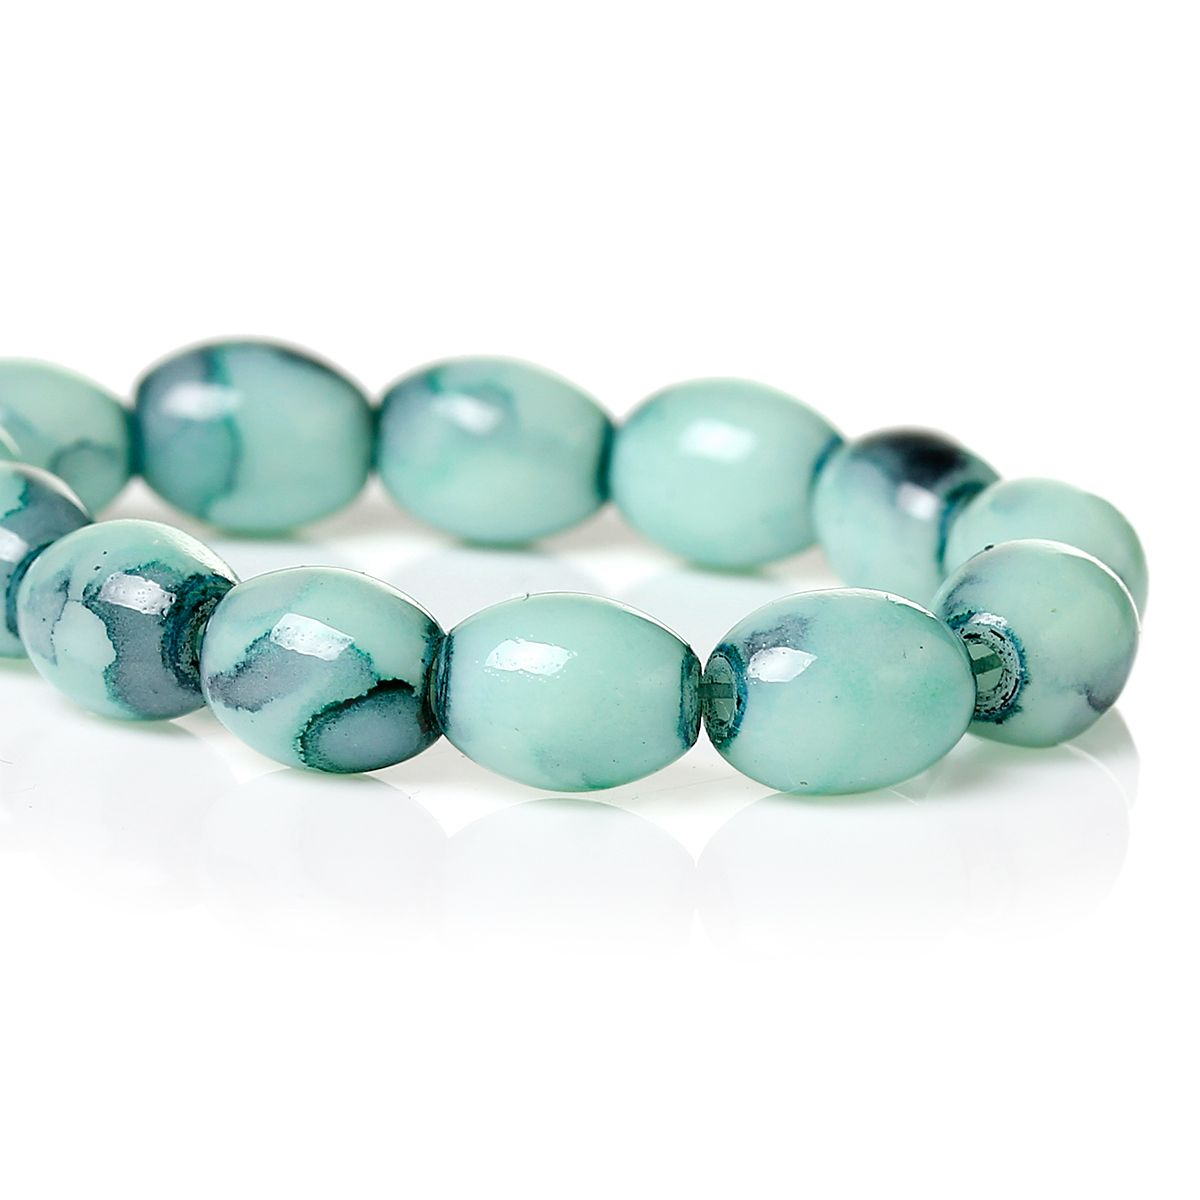 25 x Glass Ovals in Opaque Mint Green 8x6mm, €0,80